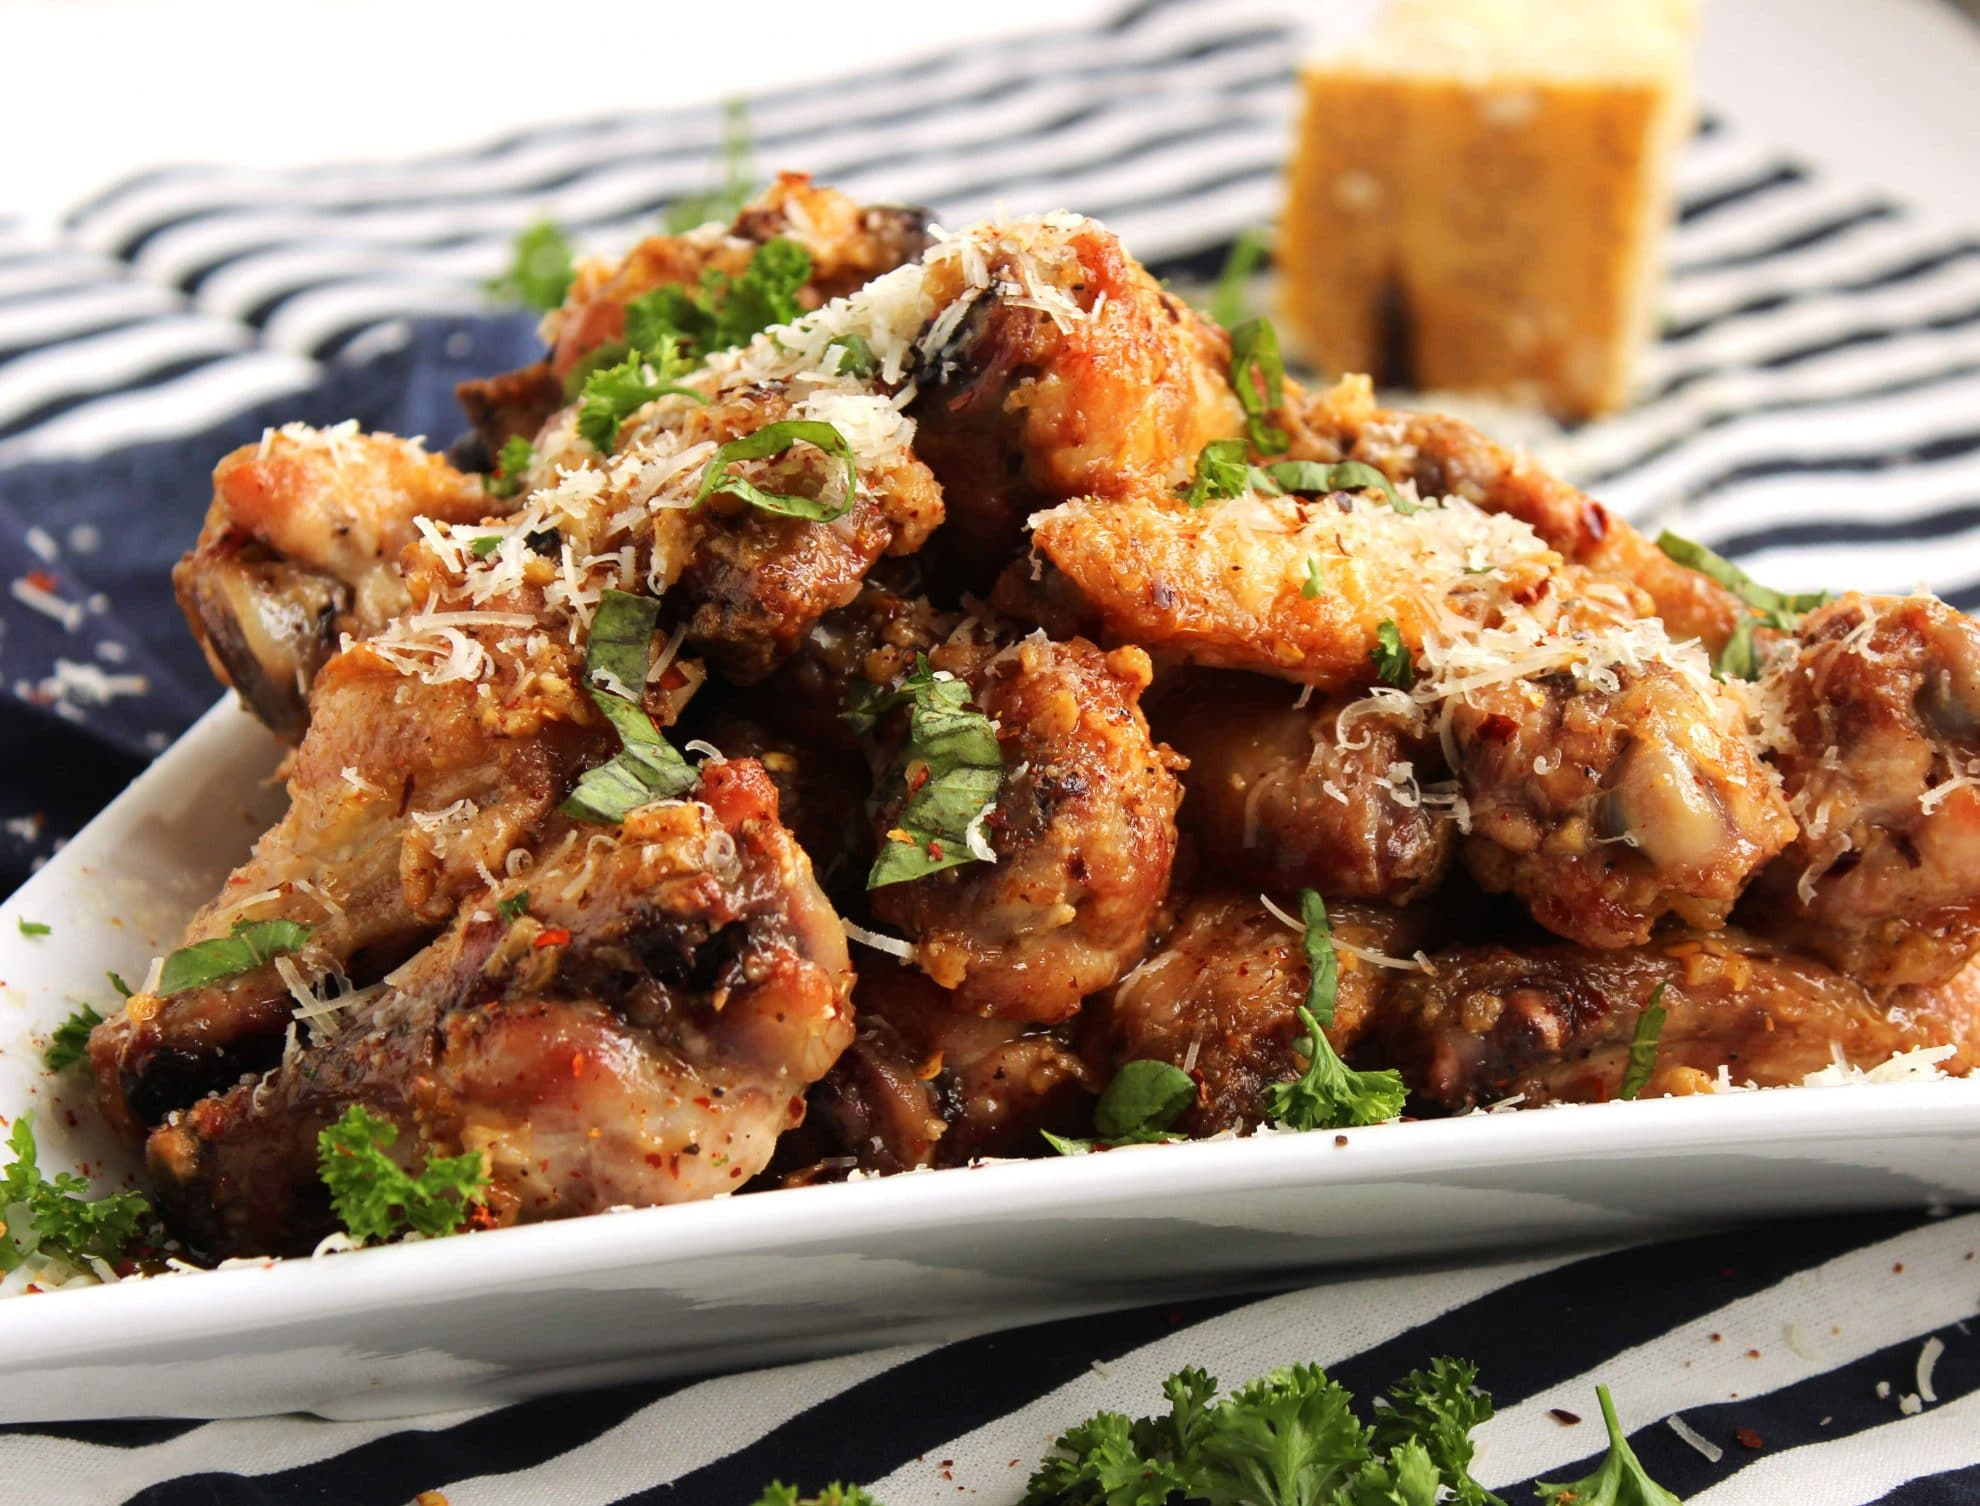 Baked Garlic-Parmesan Wings - The Suburban Soapbox